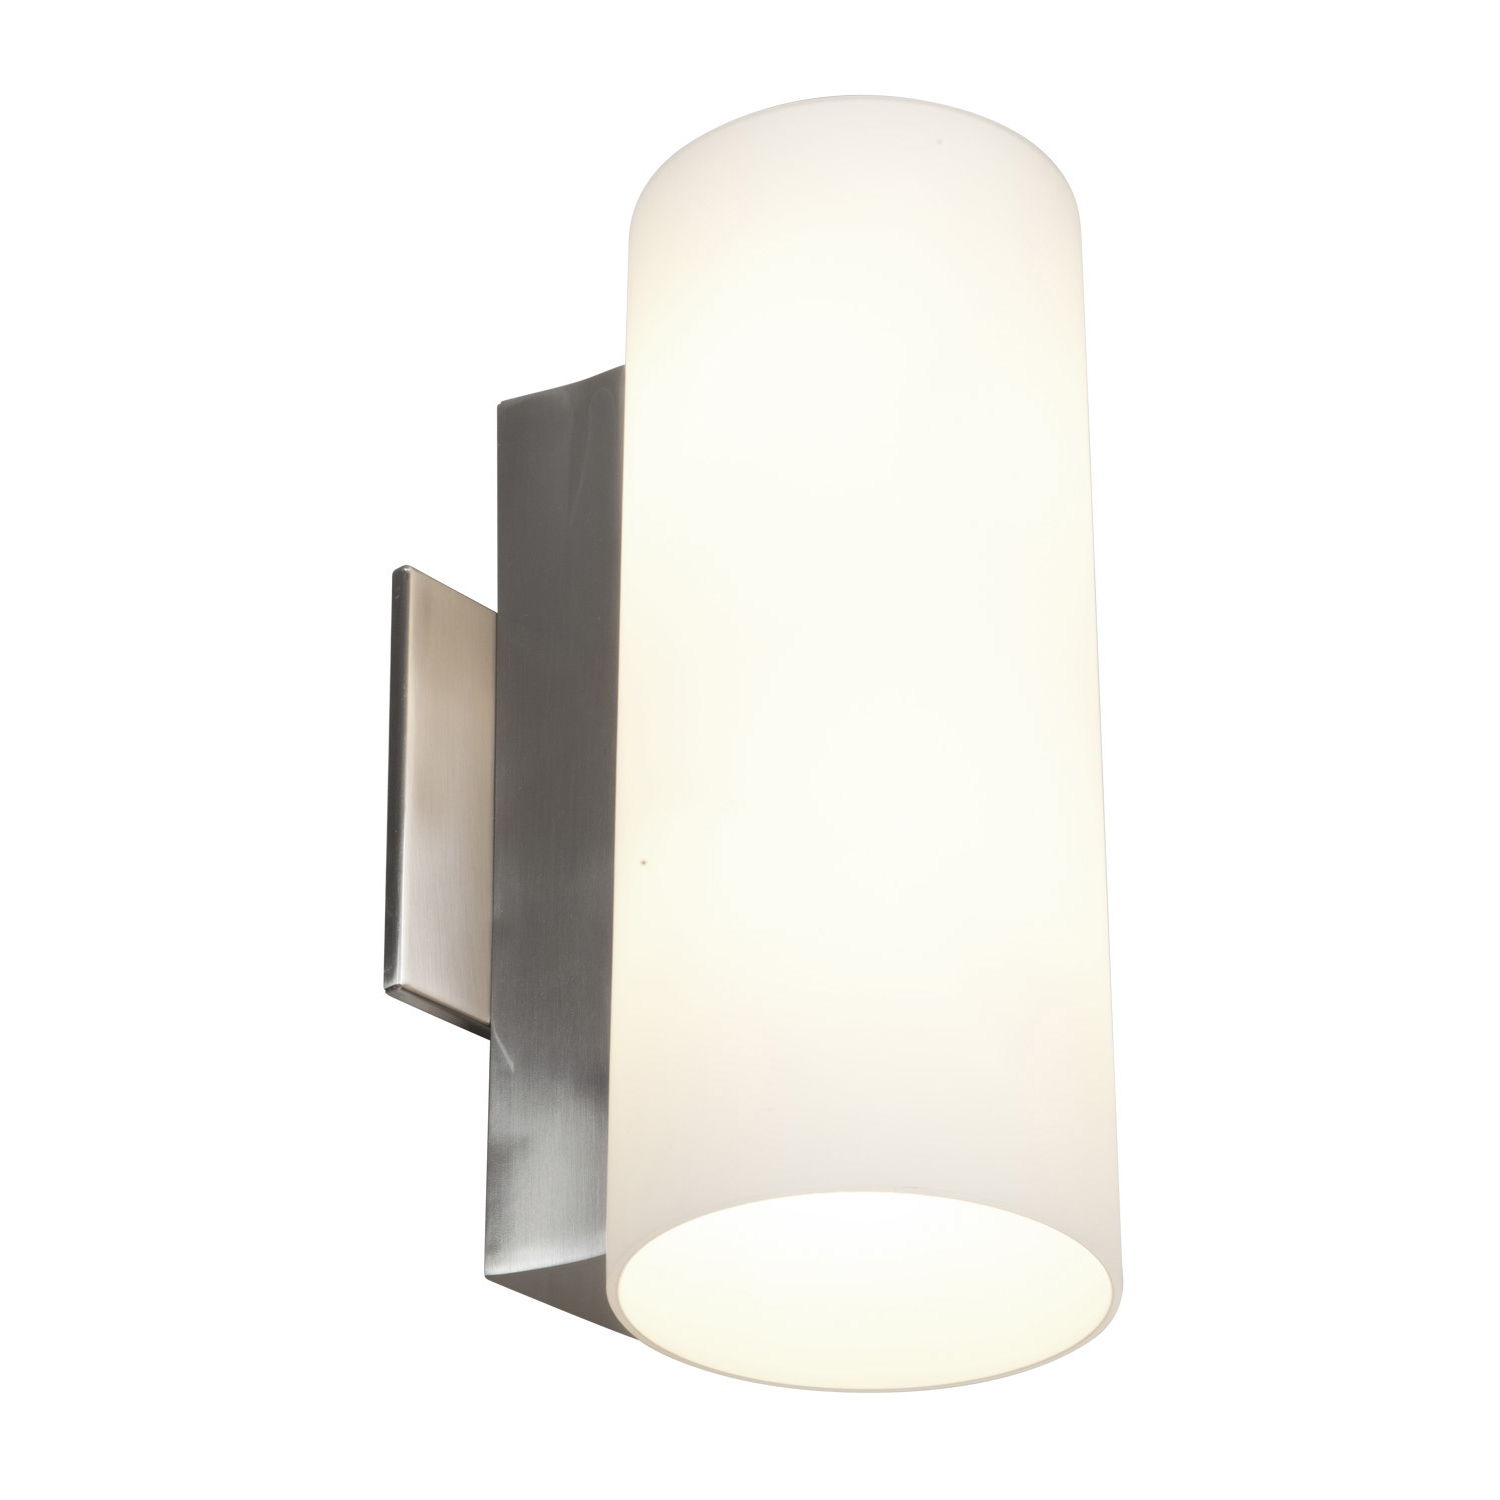 Modern wall light fixtures 16 tips for selecting the Contemporary wall sconces for living room